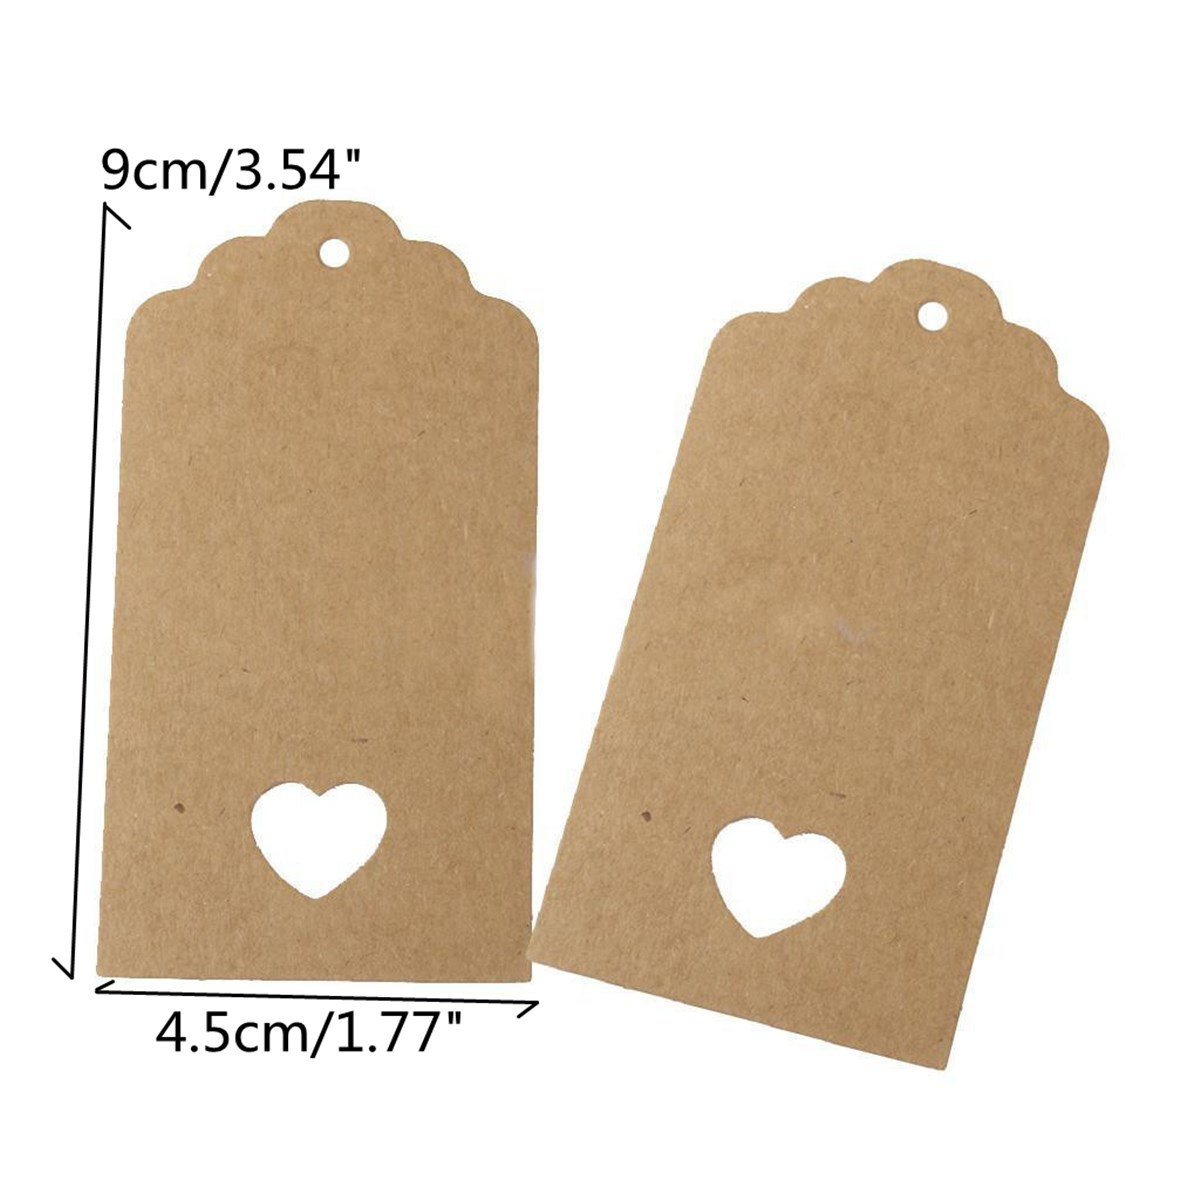 Kraft paper tags hanging labels string price craft diy card tags kraft paper tags hanging labels string price craft diy card tags wedding party favor gifts bags boxes decoration 100pcsset in party diy decorations from jeuxipadfo Choice Image